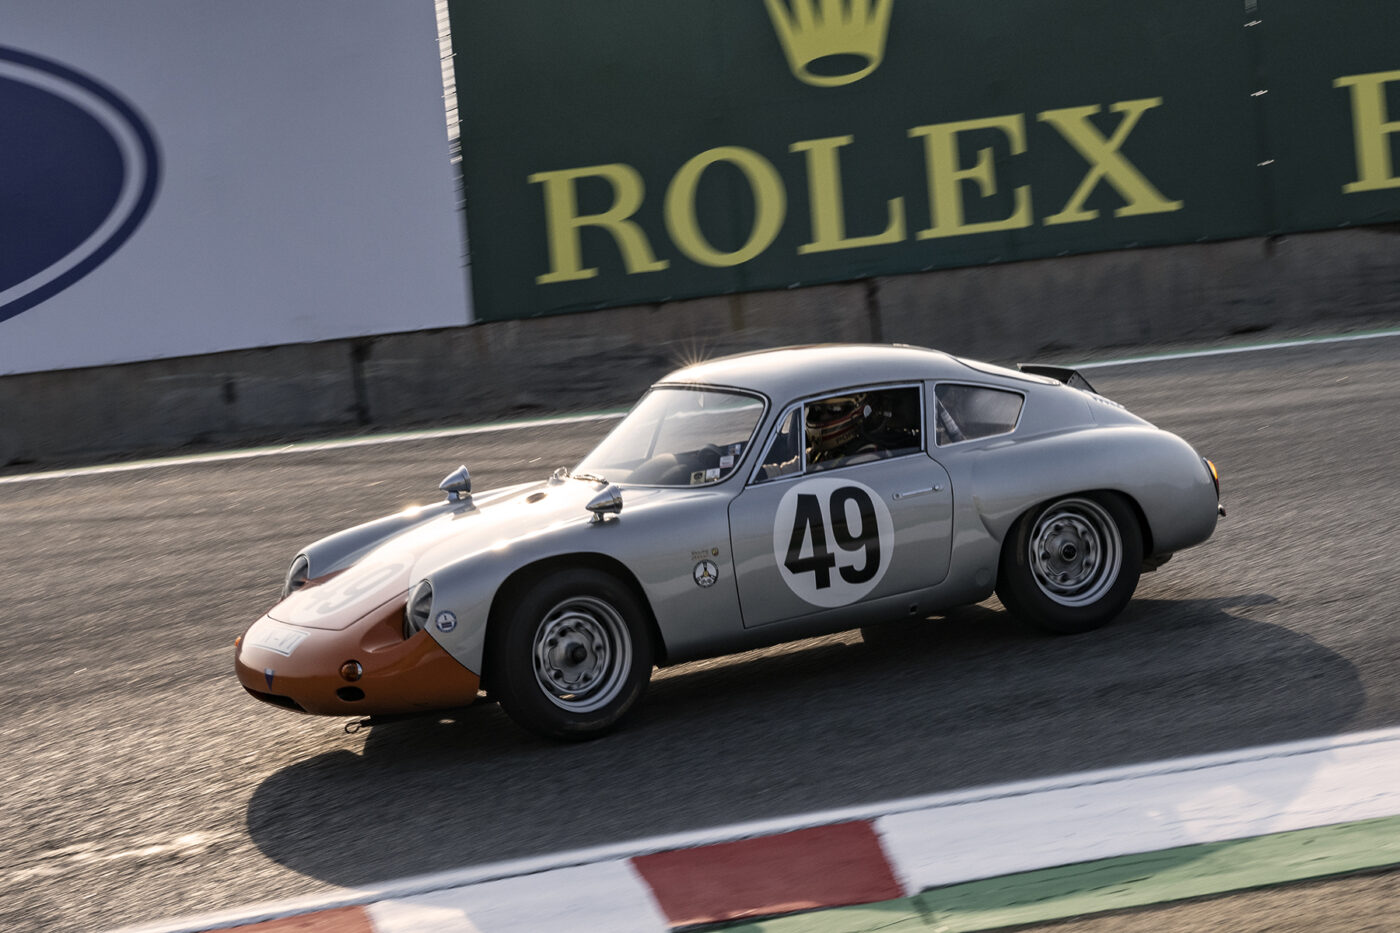 Early Saturday morning sun lights up Ranson Webster's 1961 Porsche Abarth Carrera 1966 as he approaches the Corkscrew. ©2021 Dennis Gray